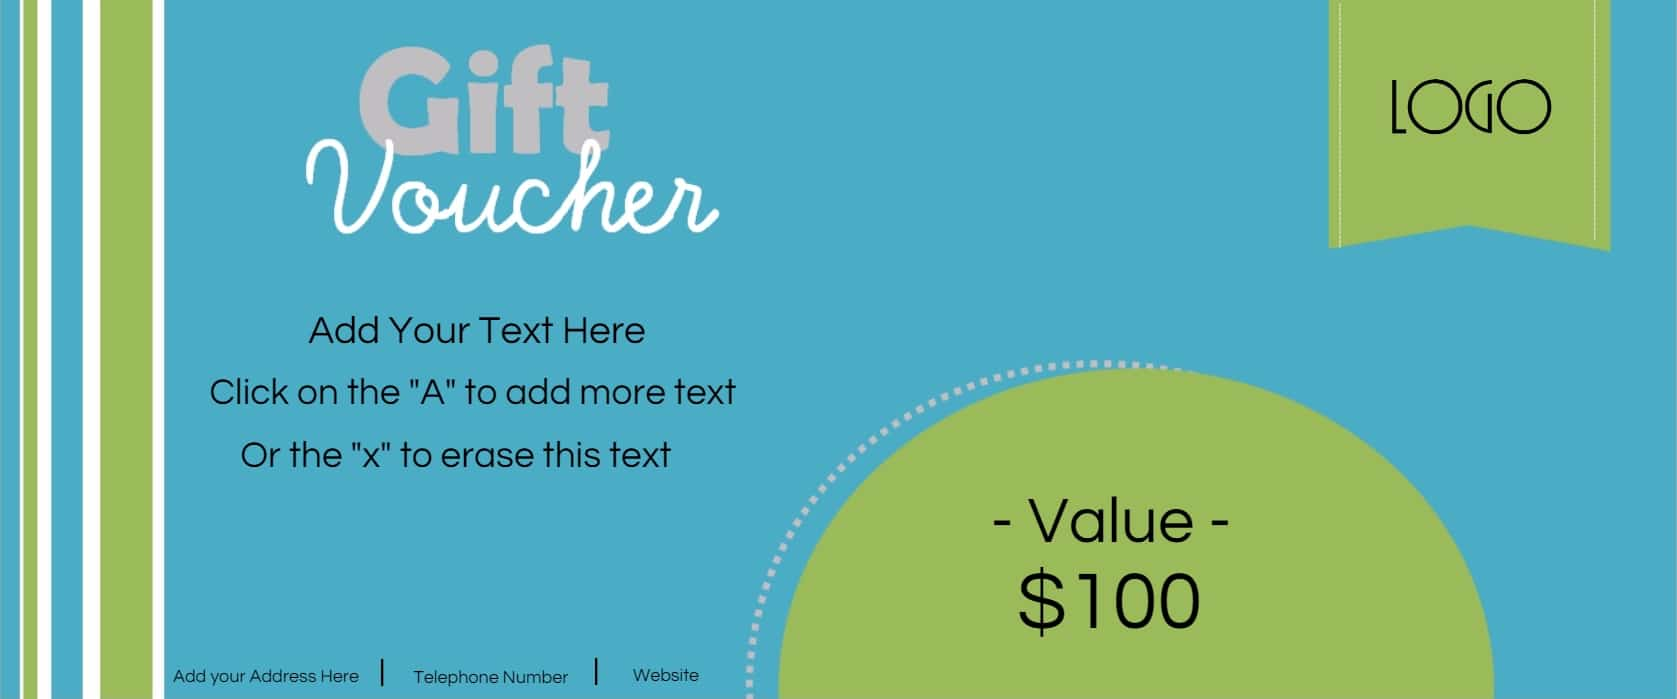 Blue And Green Gift Voucher With Customisable Text.  Make Your Own Gift Certificates Free